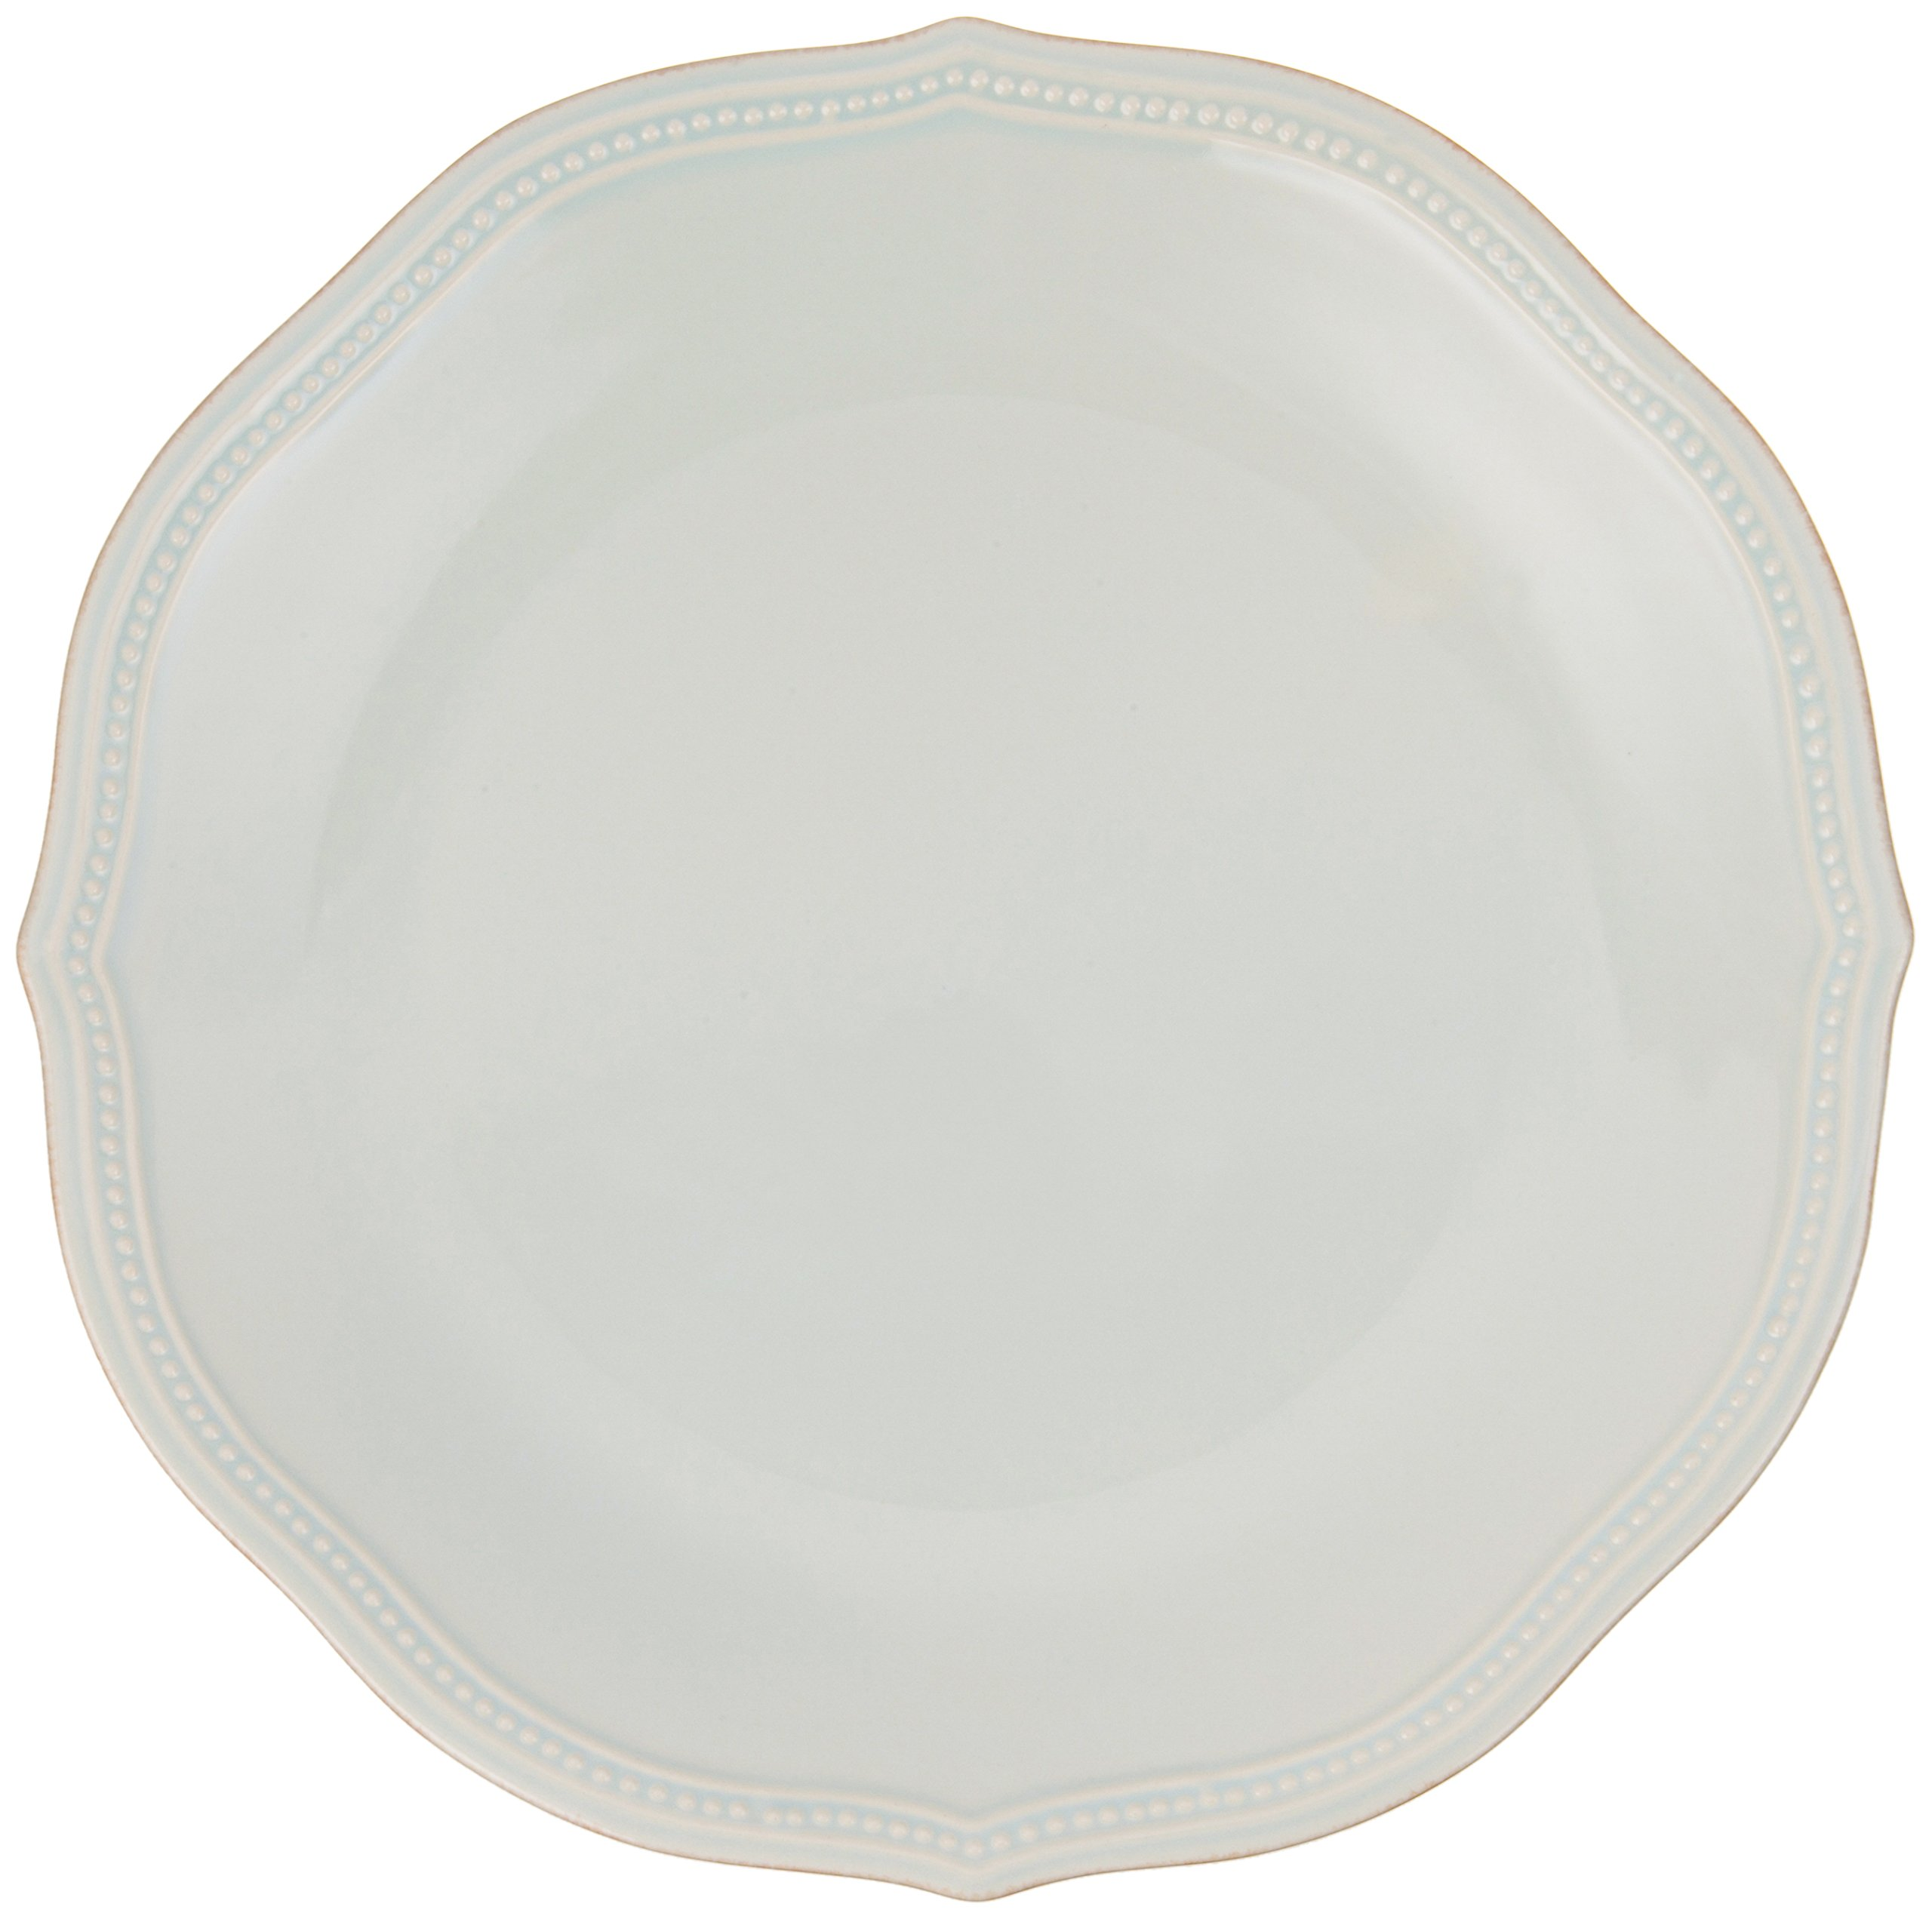 Lenox 855135 Ice Blue French Perle Bead Dinner Plate, 1.95 LB